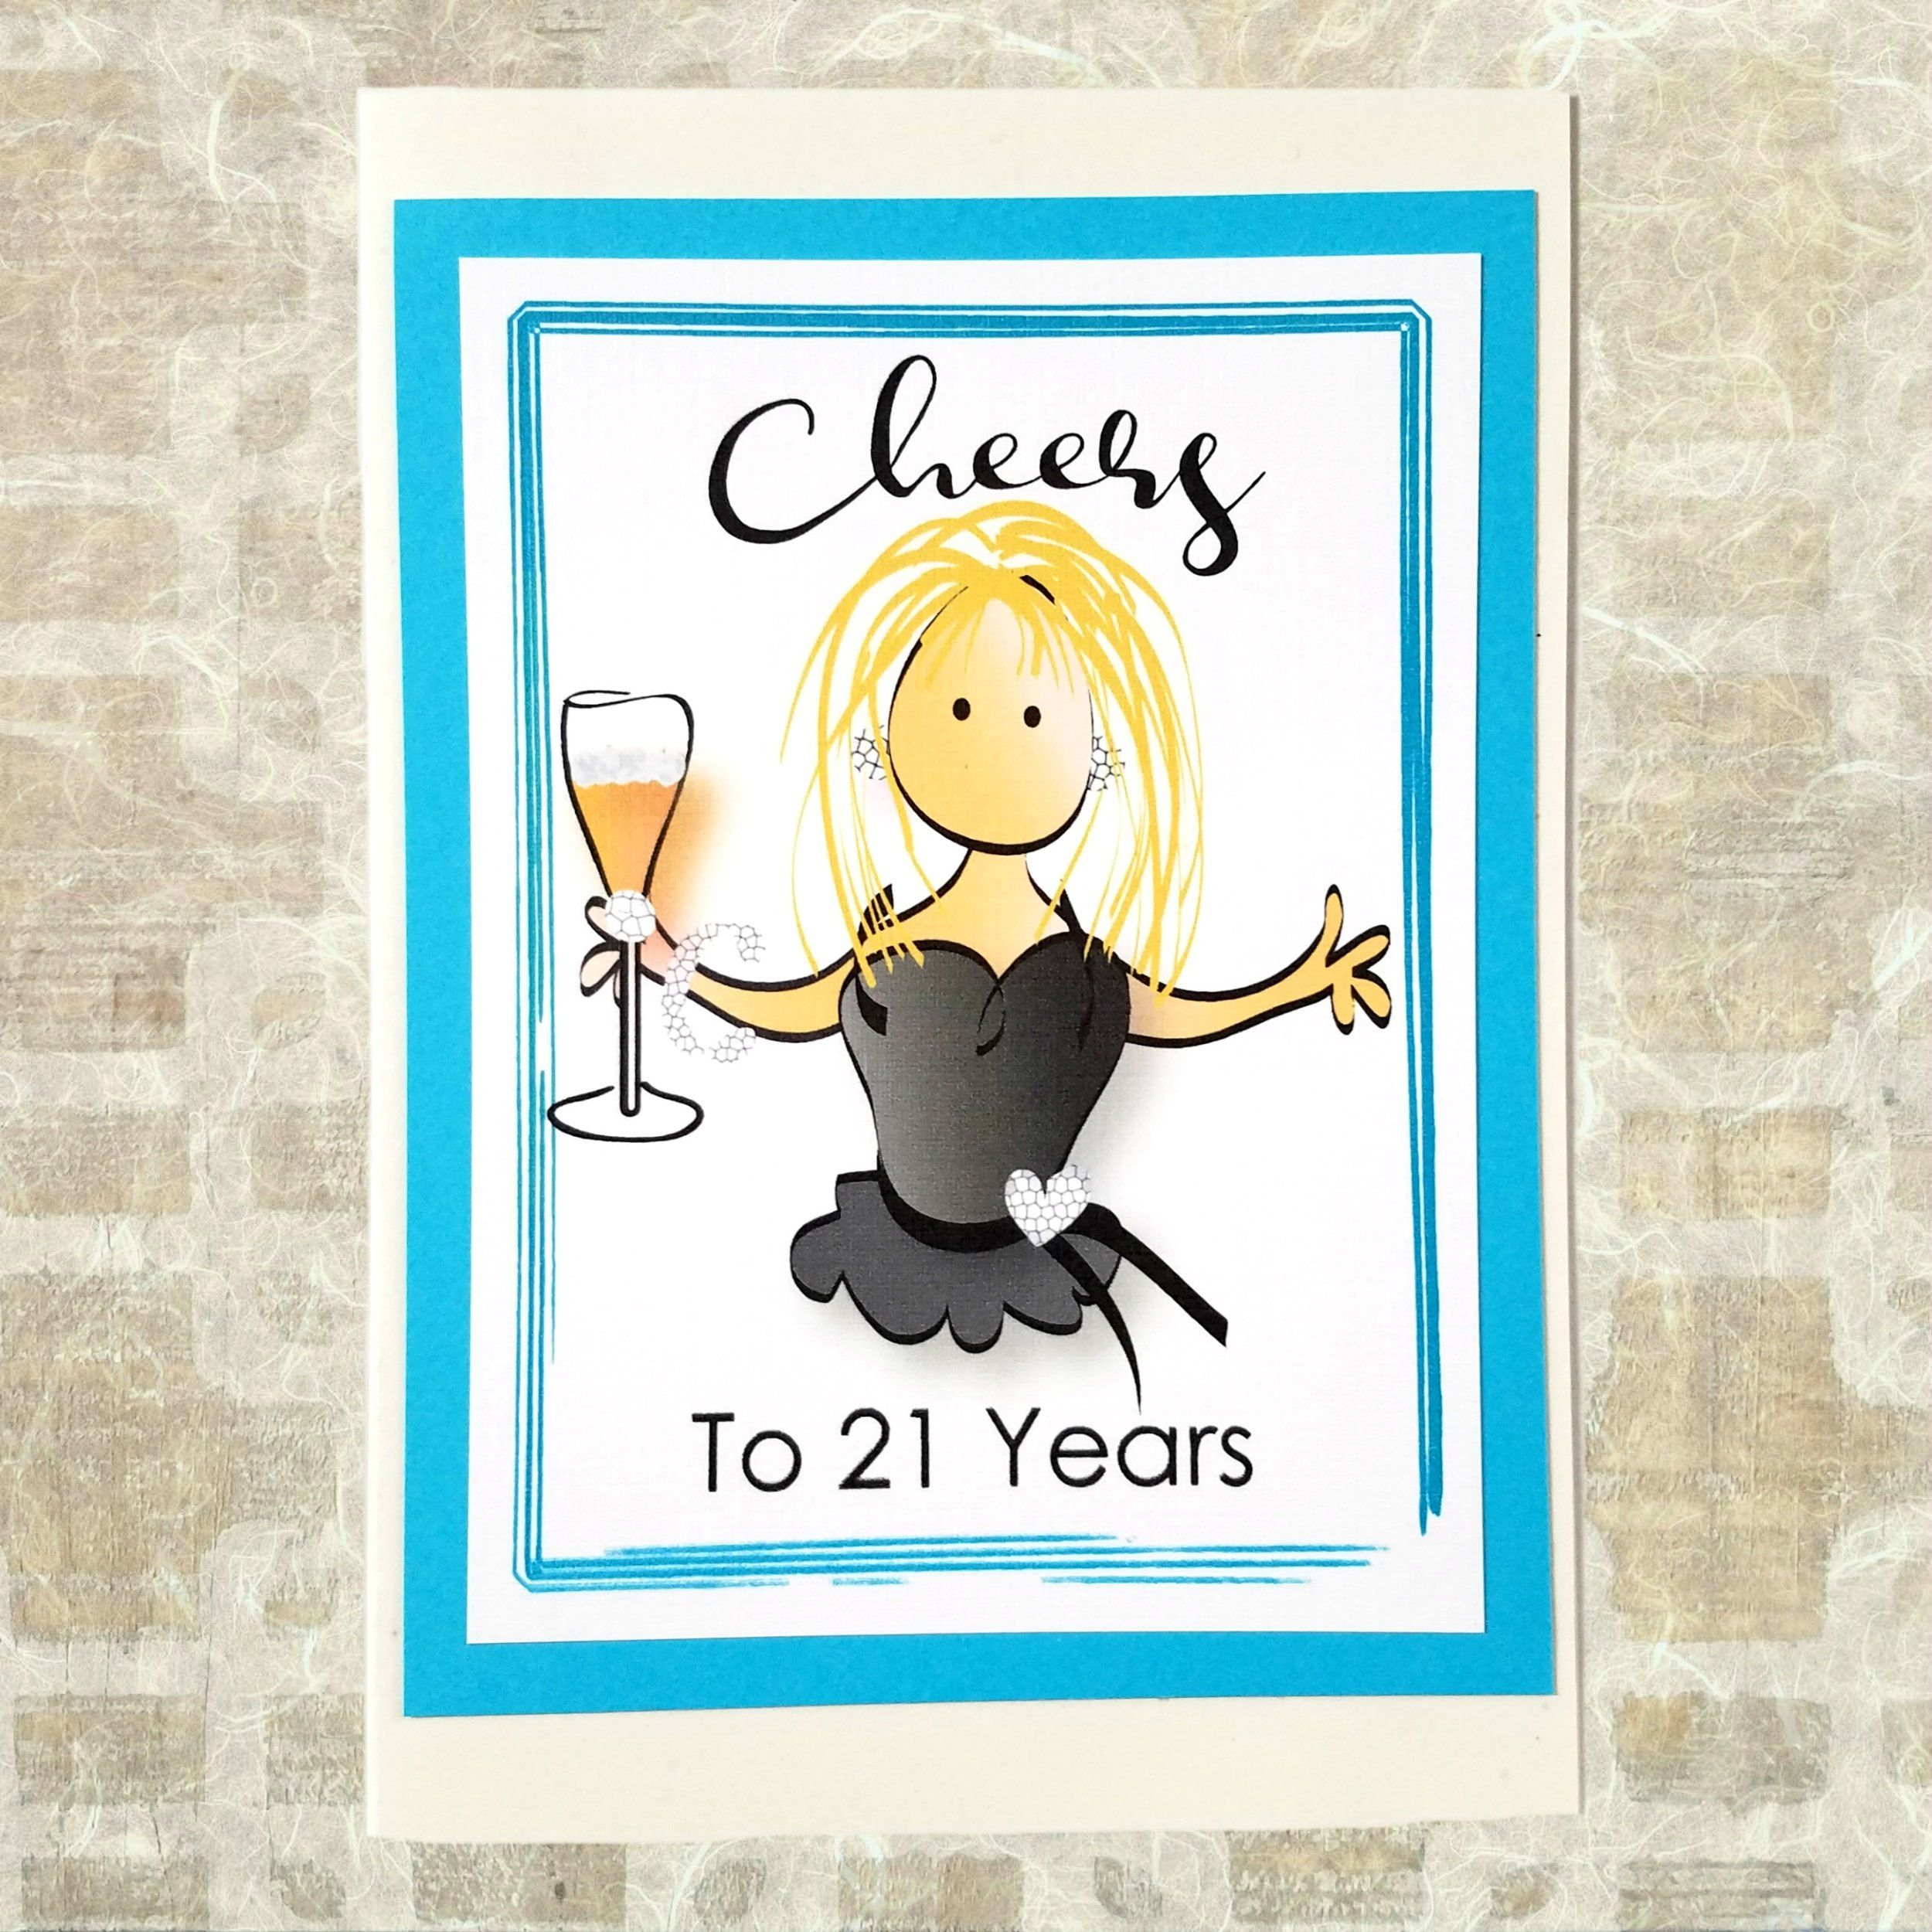 21st Birthday Card For Her Cheers To Her 21 Happy Birthday Etsy Funny Birthday Cards Happy Birthday Card Funny 21st Birthday Cards